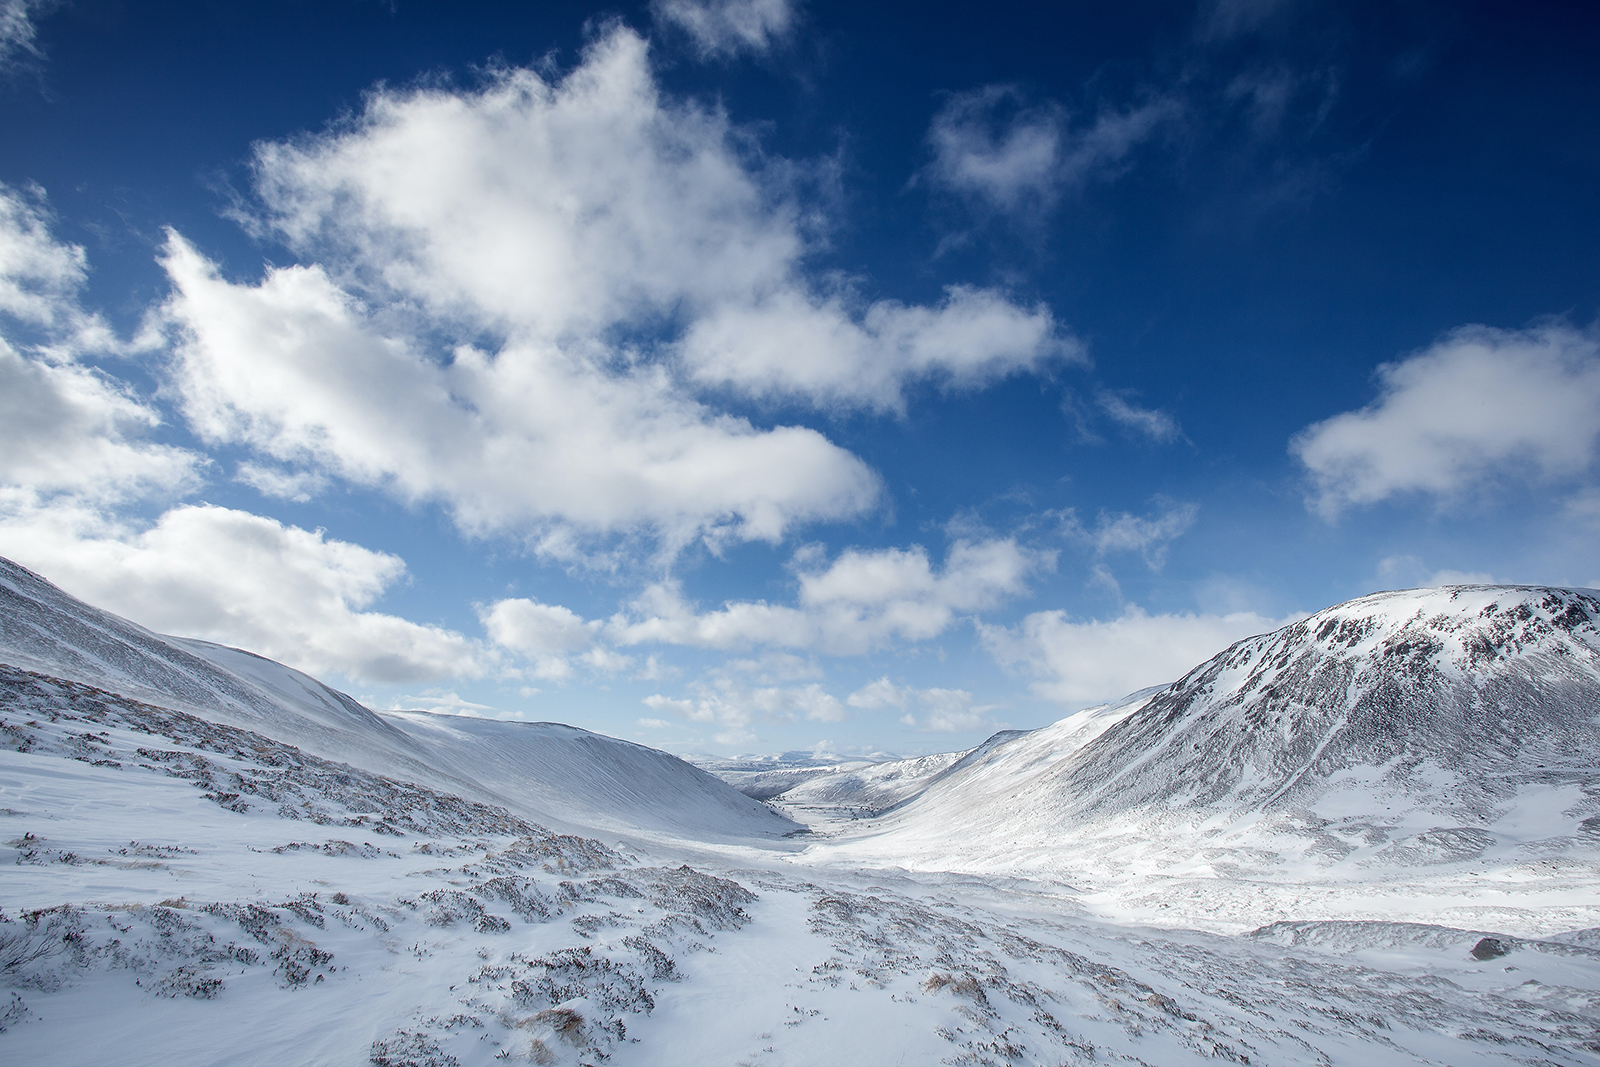 The snowy landscapes of the Cairngorms